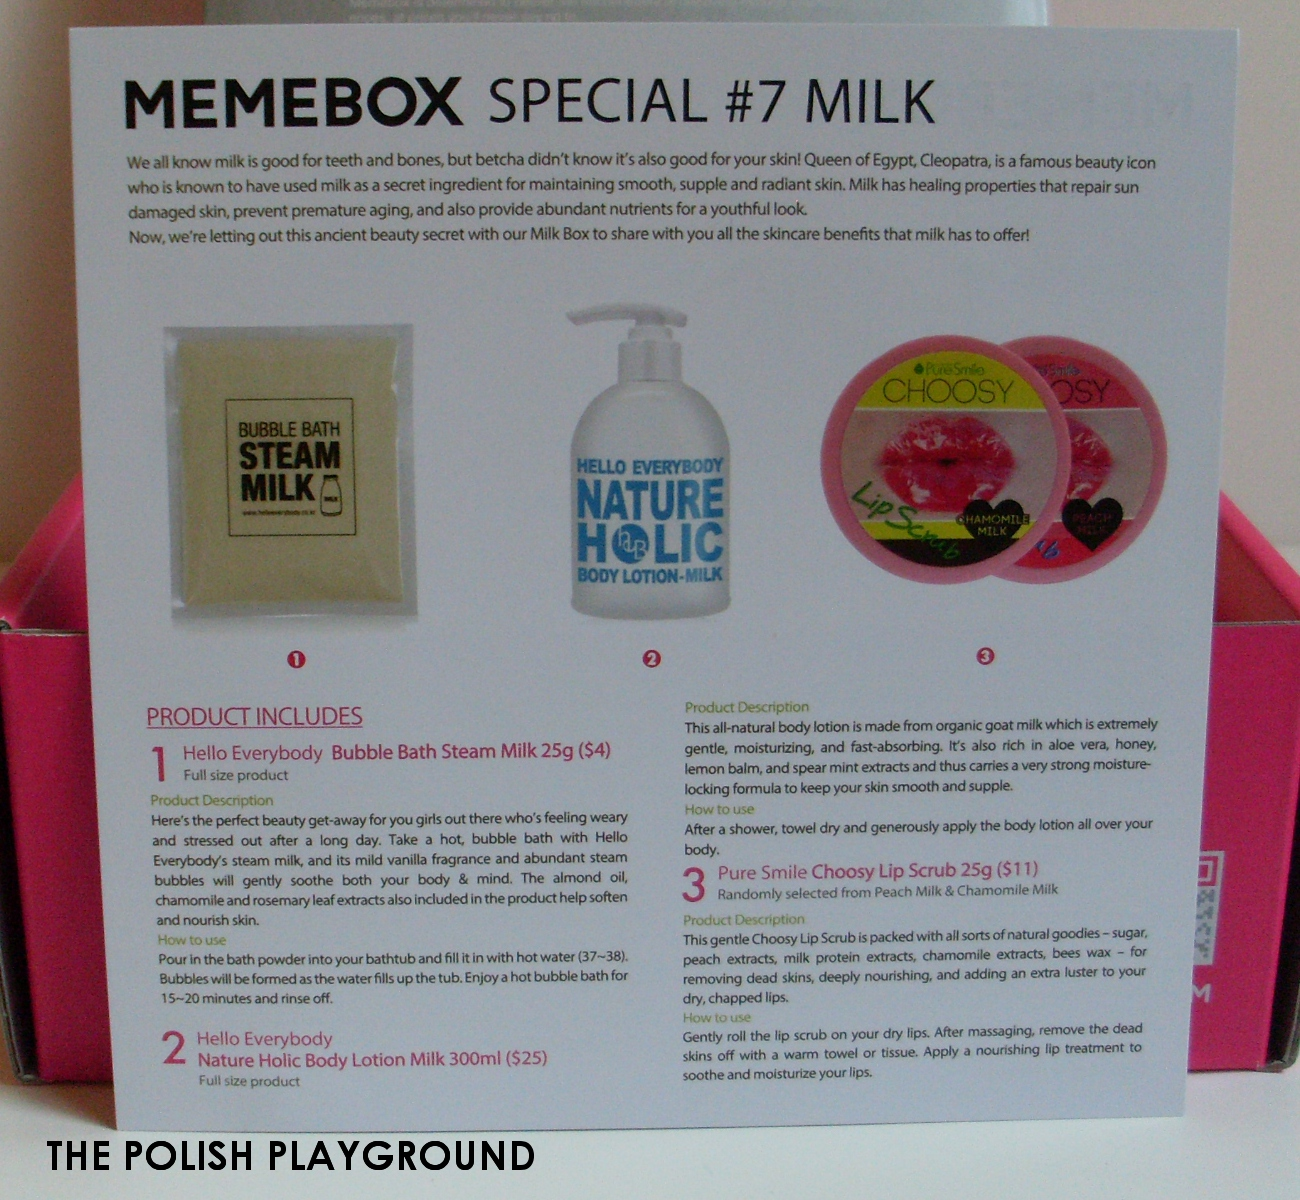 Memebox Special #7 Milk Unboxing